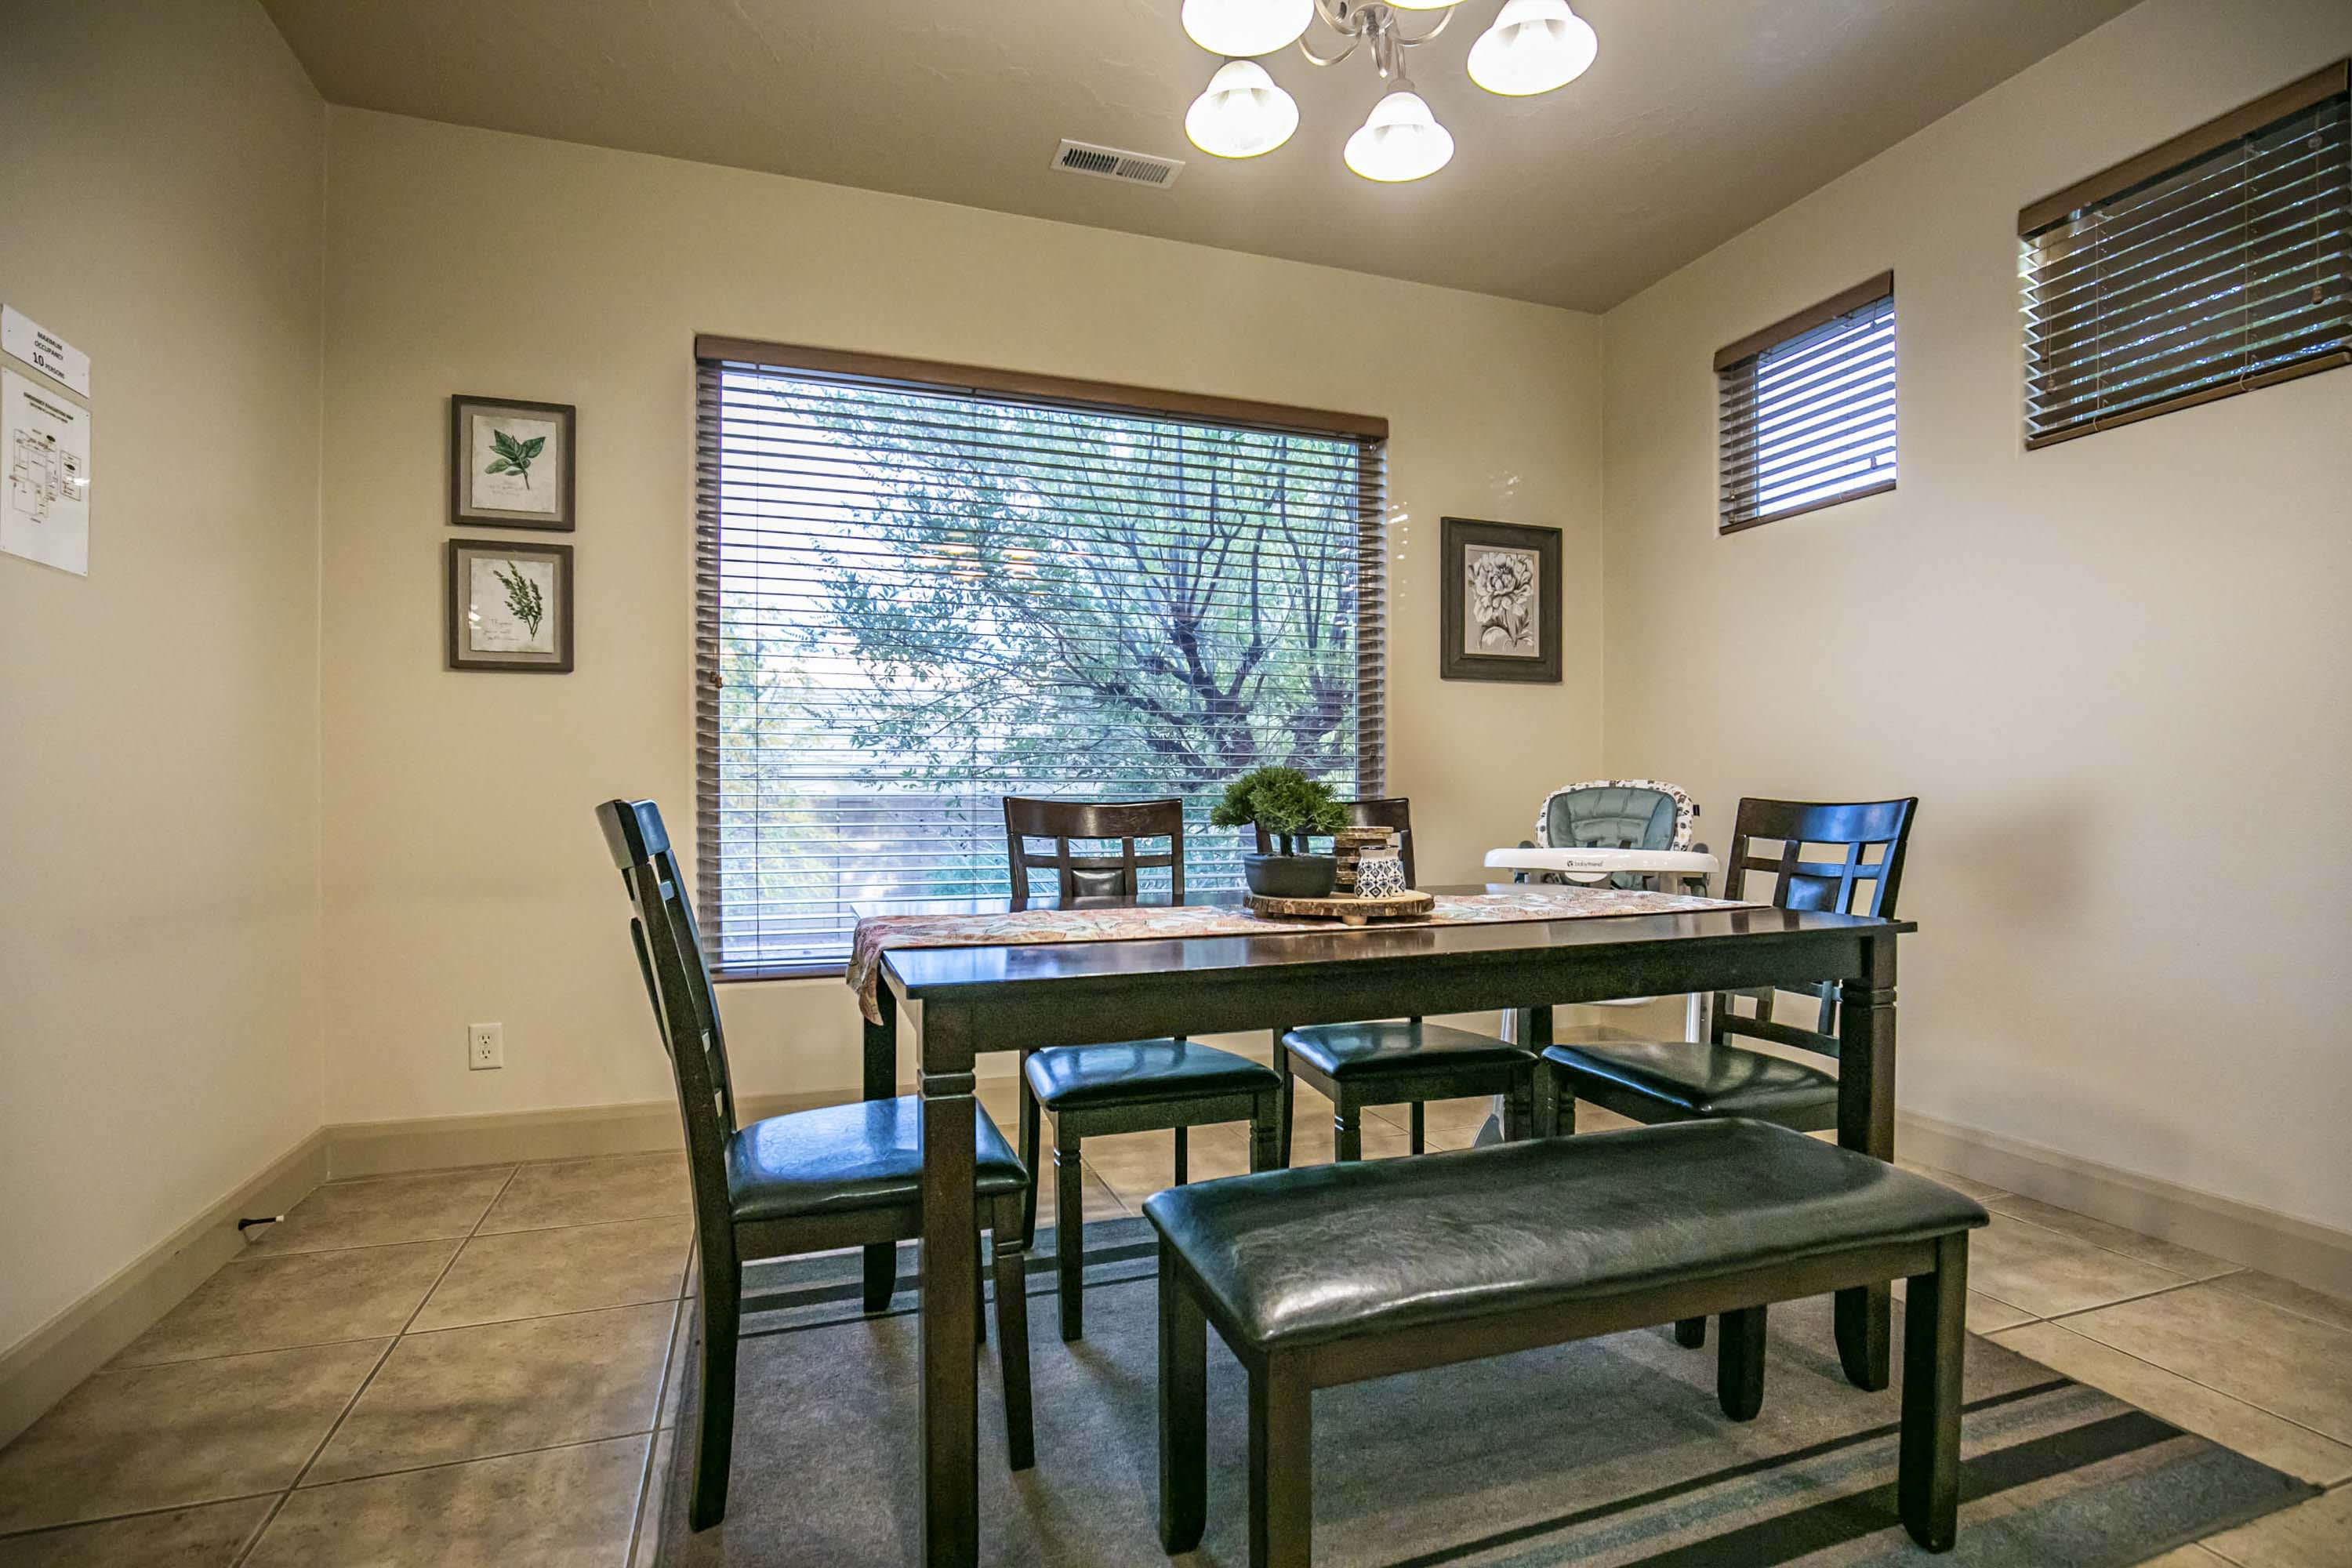 Eat at the 6-person dining table after preparing meals.